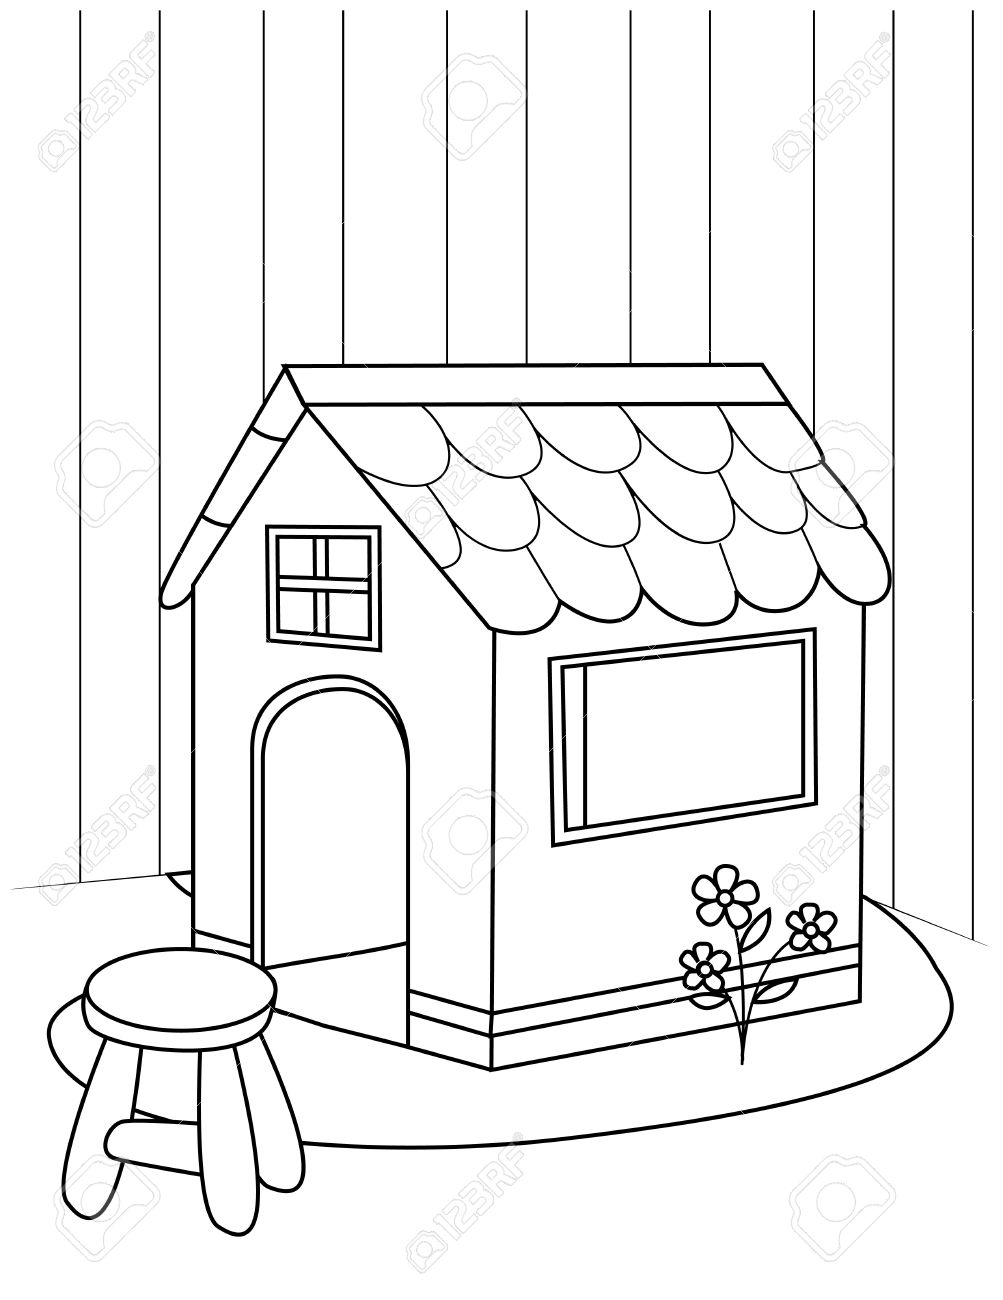 1003x1300 Line Art Illustration Of A Playhouse Stock Photo, Picture